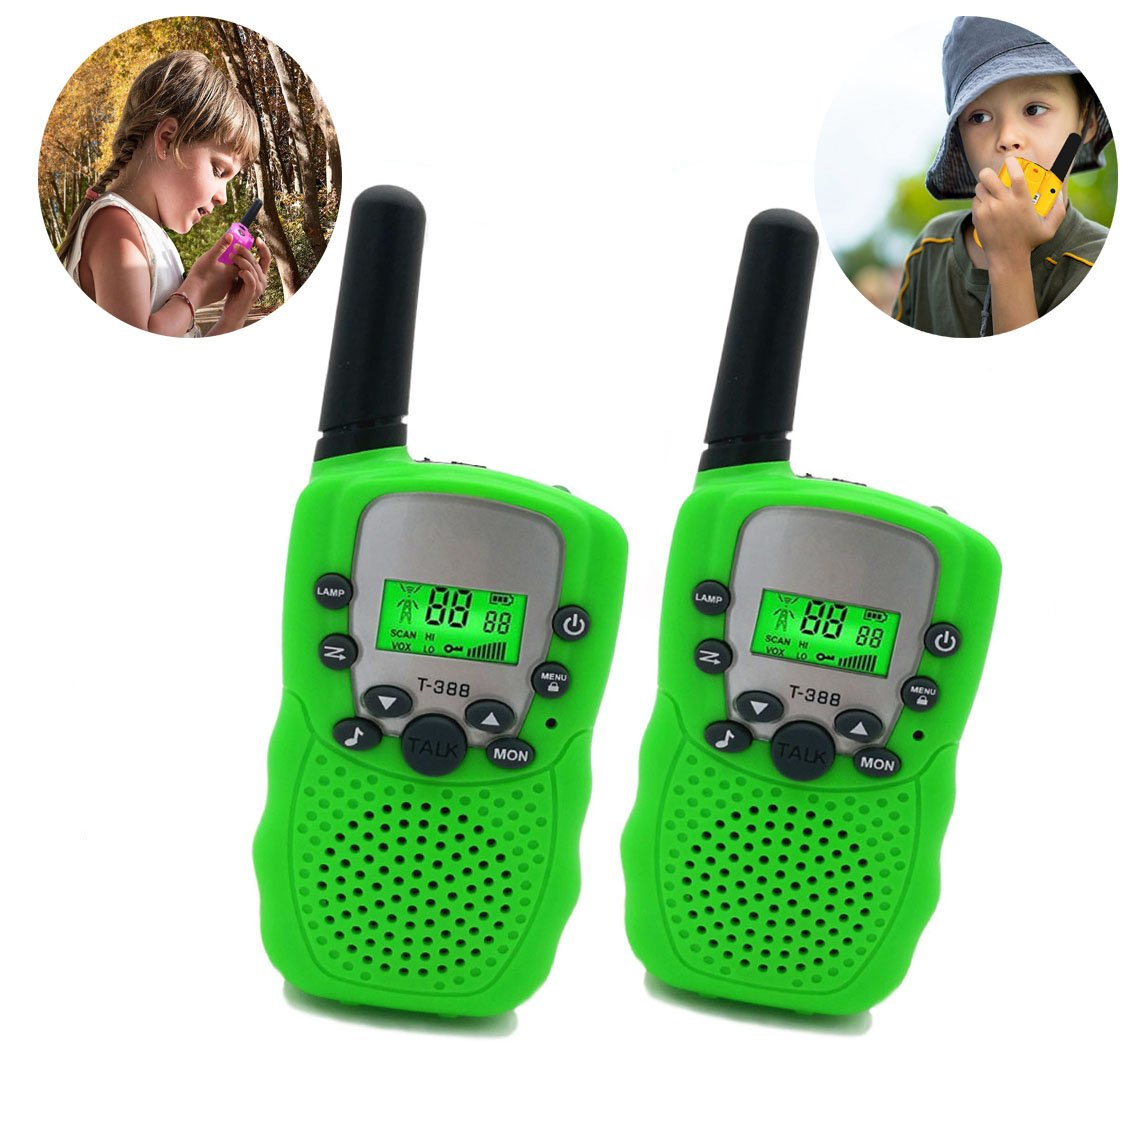 Three Ducks Toys 4-8 Year Old Boys, Long Range Walkie Talkies 9-14 Year Old Boys ,Kids Outdoor Toys Games Gifts 3-12 Year Old Boys Girls Birthday Presents Gifts(Green)